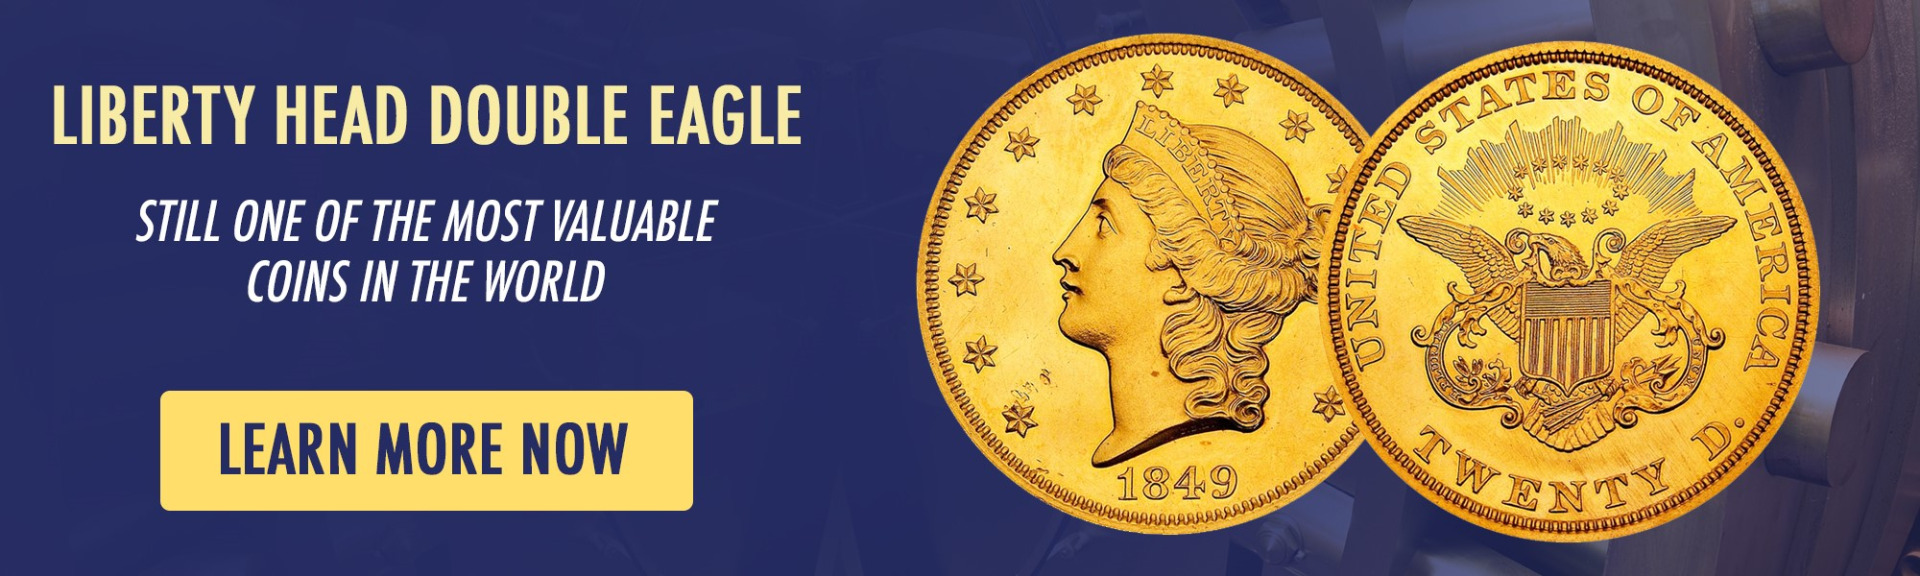 Valuing the Liberty Head Double Eagle